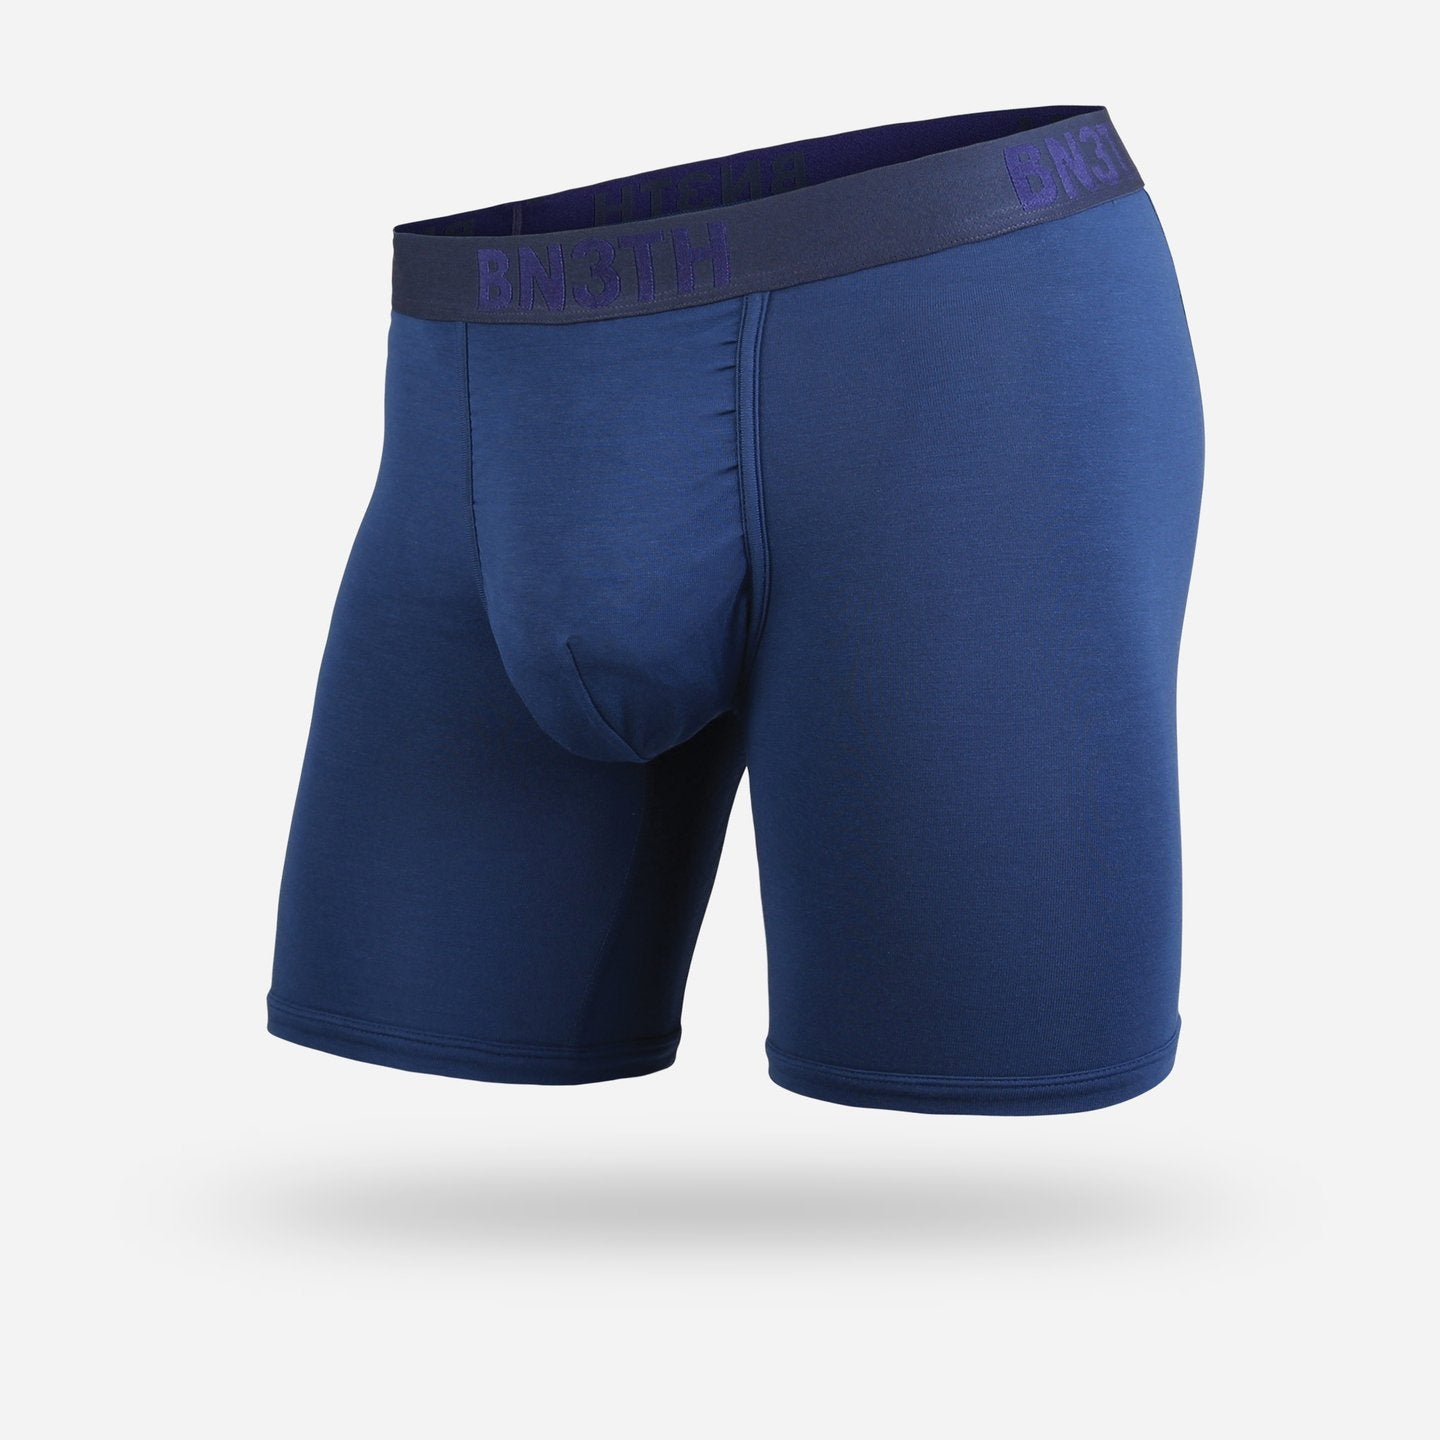 BN3TH - CLASSIC BOXER BRIEF IN NAVY